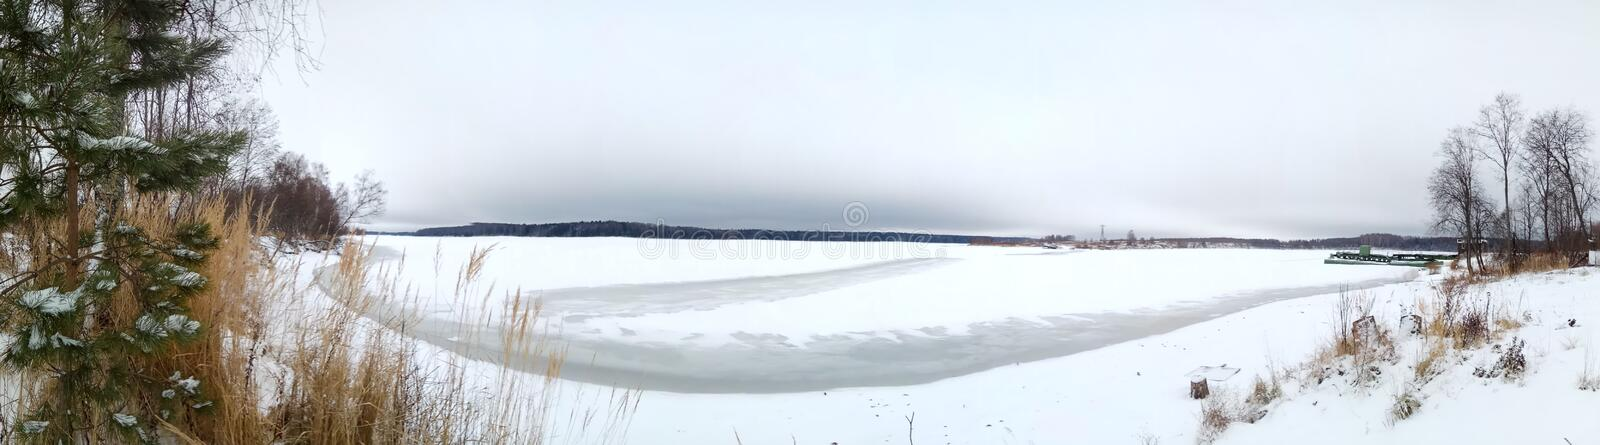 Frozen lake in the snow. Around the winter forest, trees. Grey frosty sky. Banner Background Wallpaper royalty free stock photography